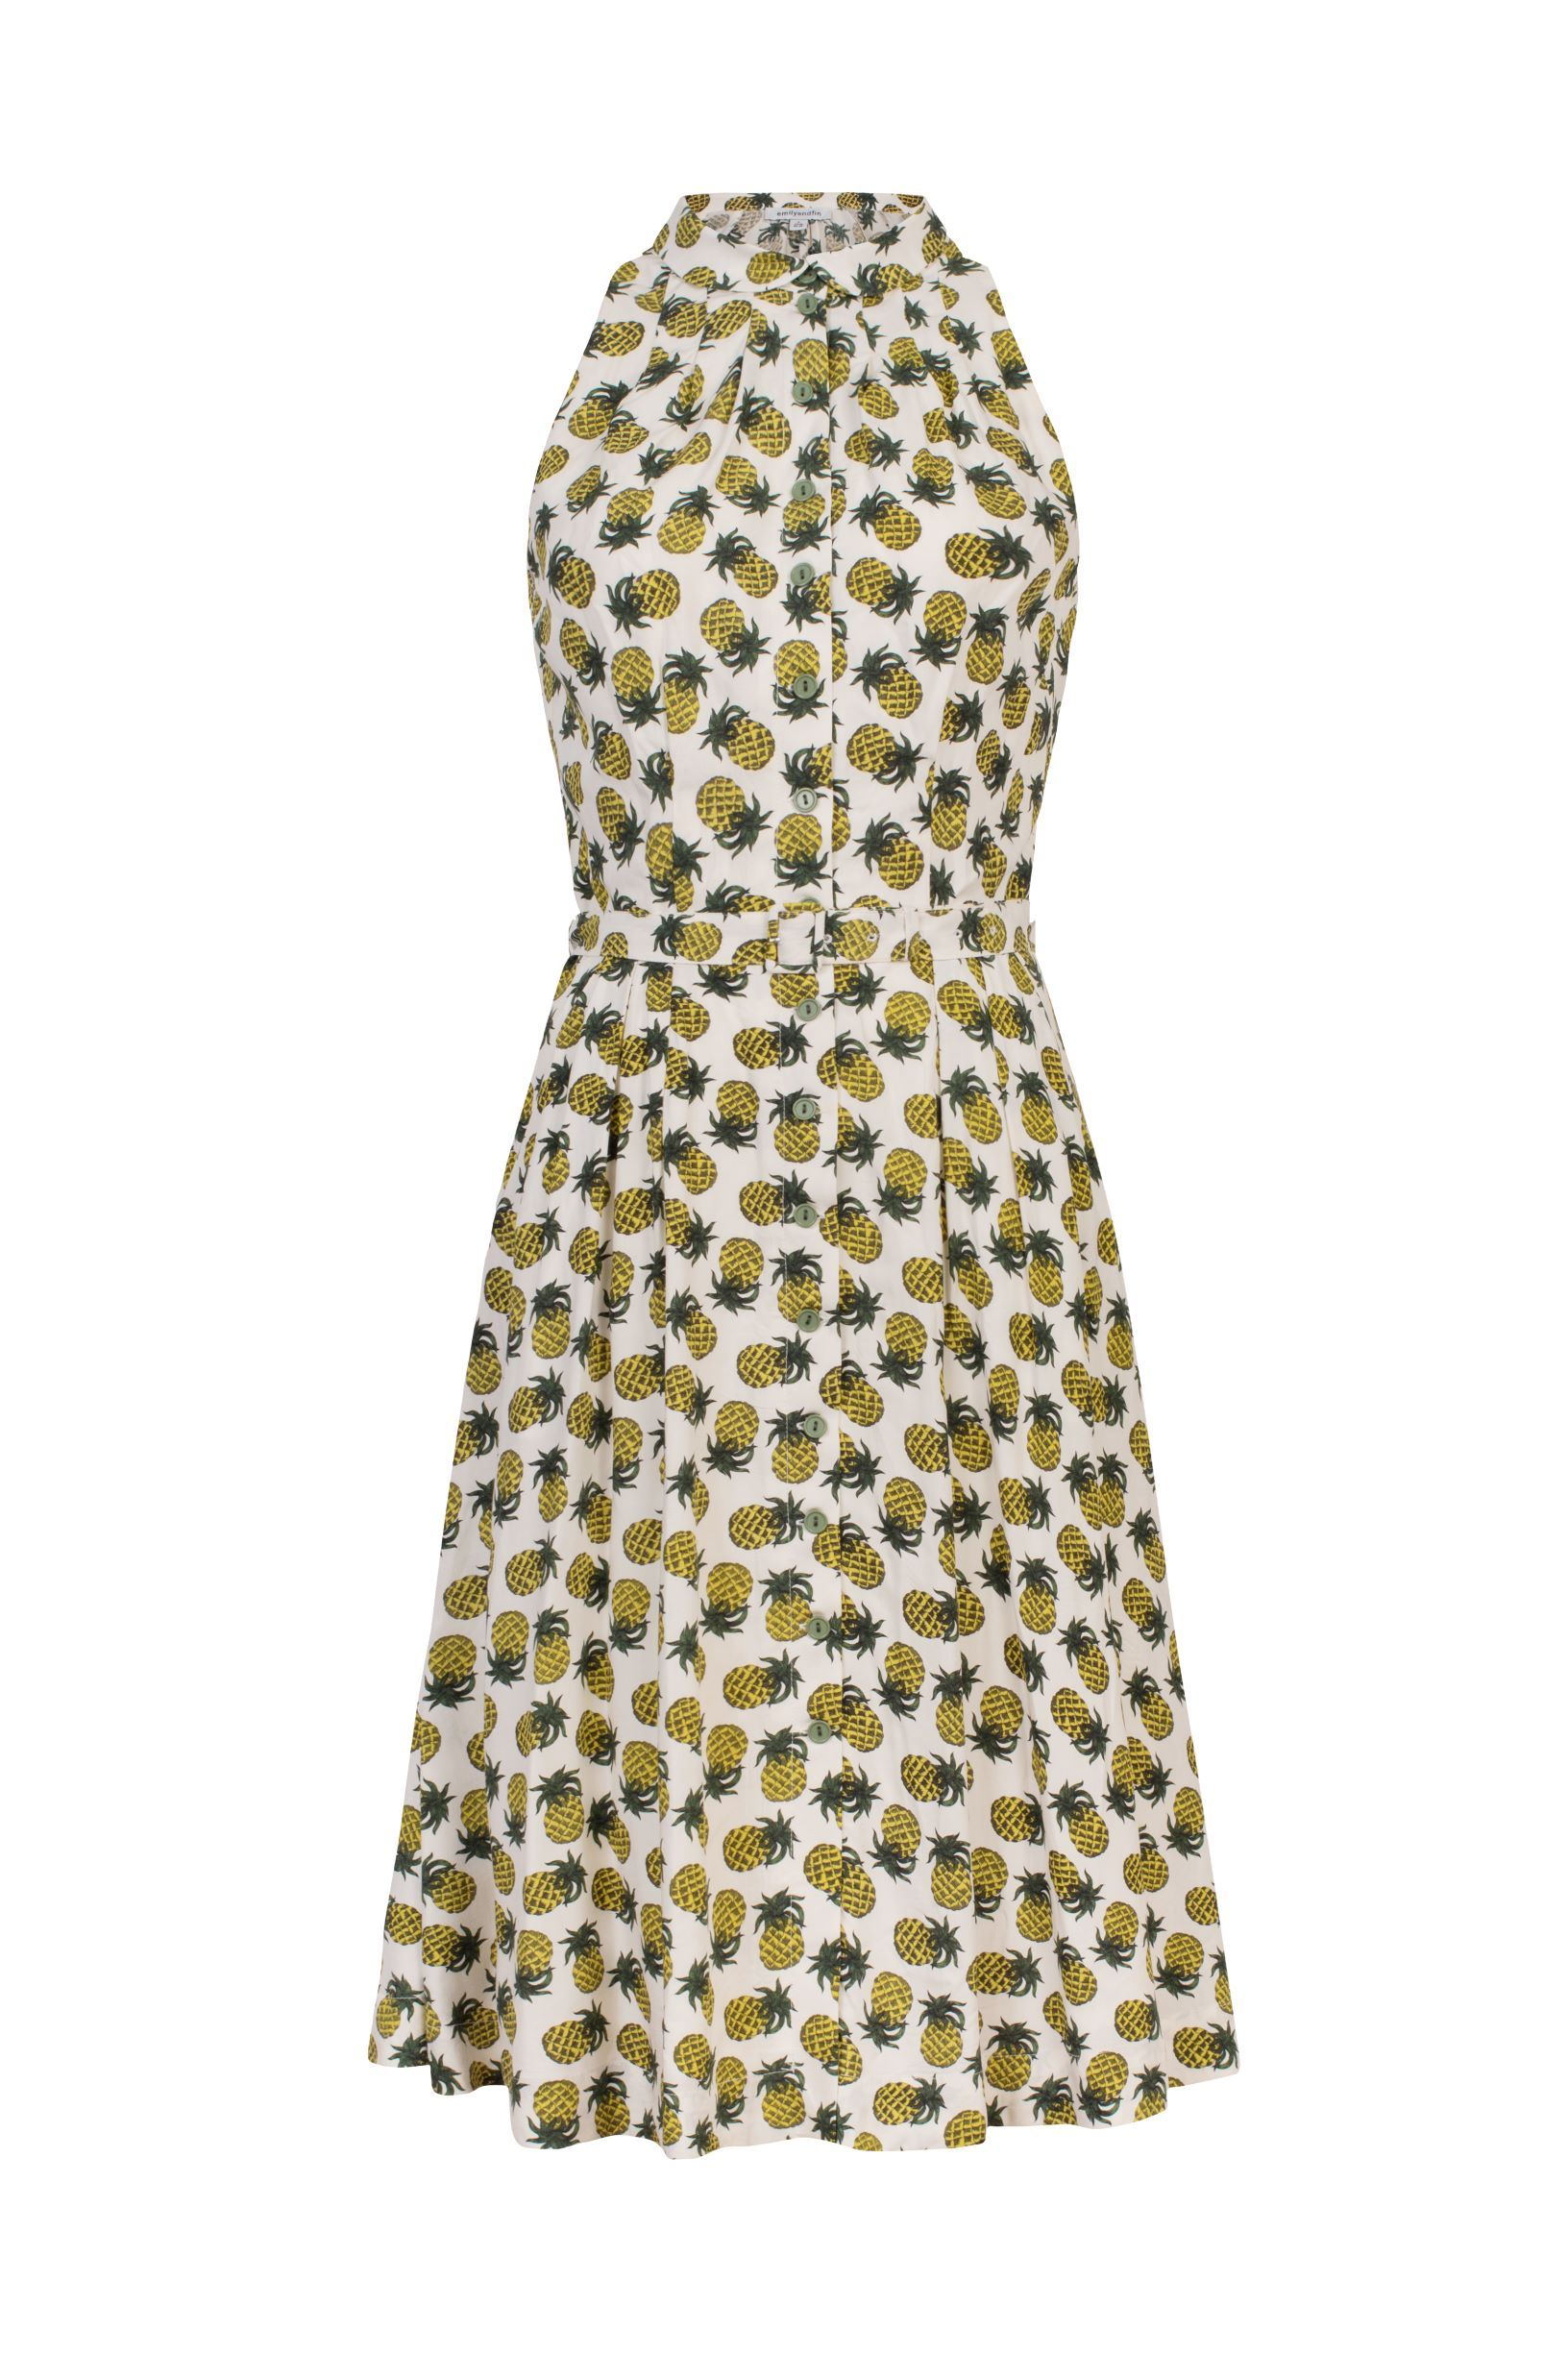 Pineapple Sally Dress by Emily & Fin - BouChic